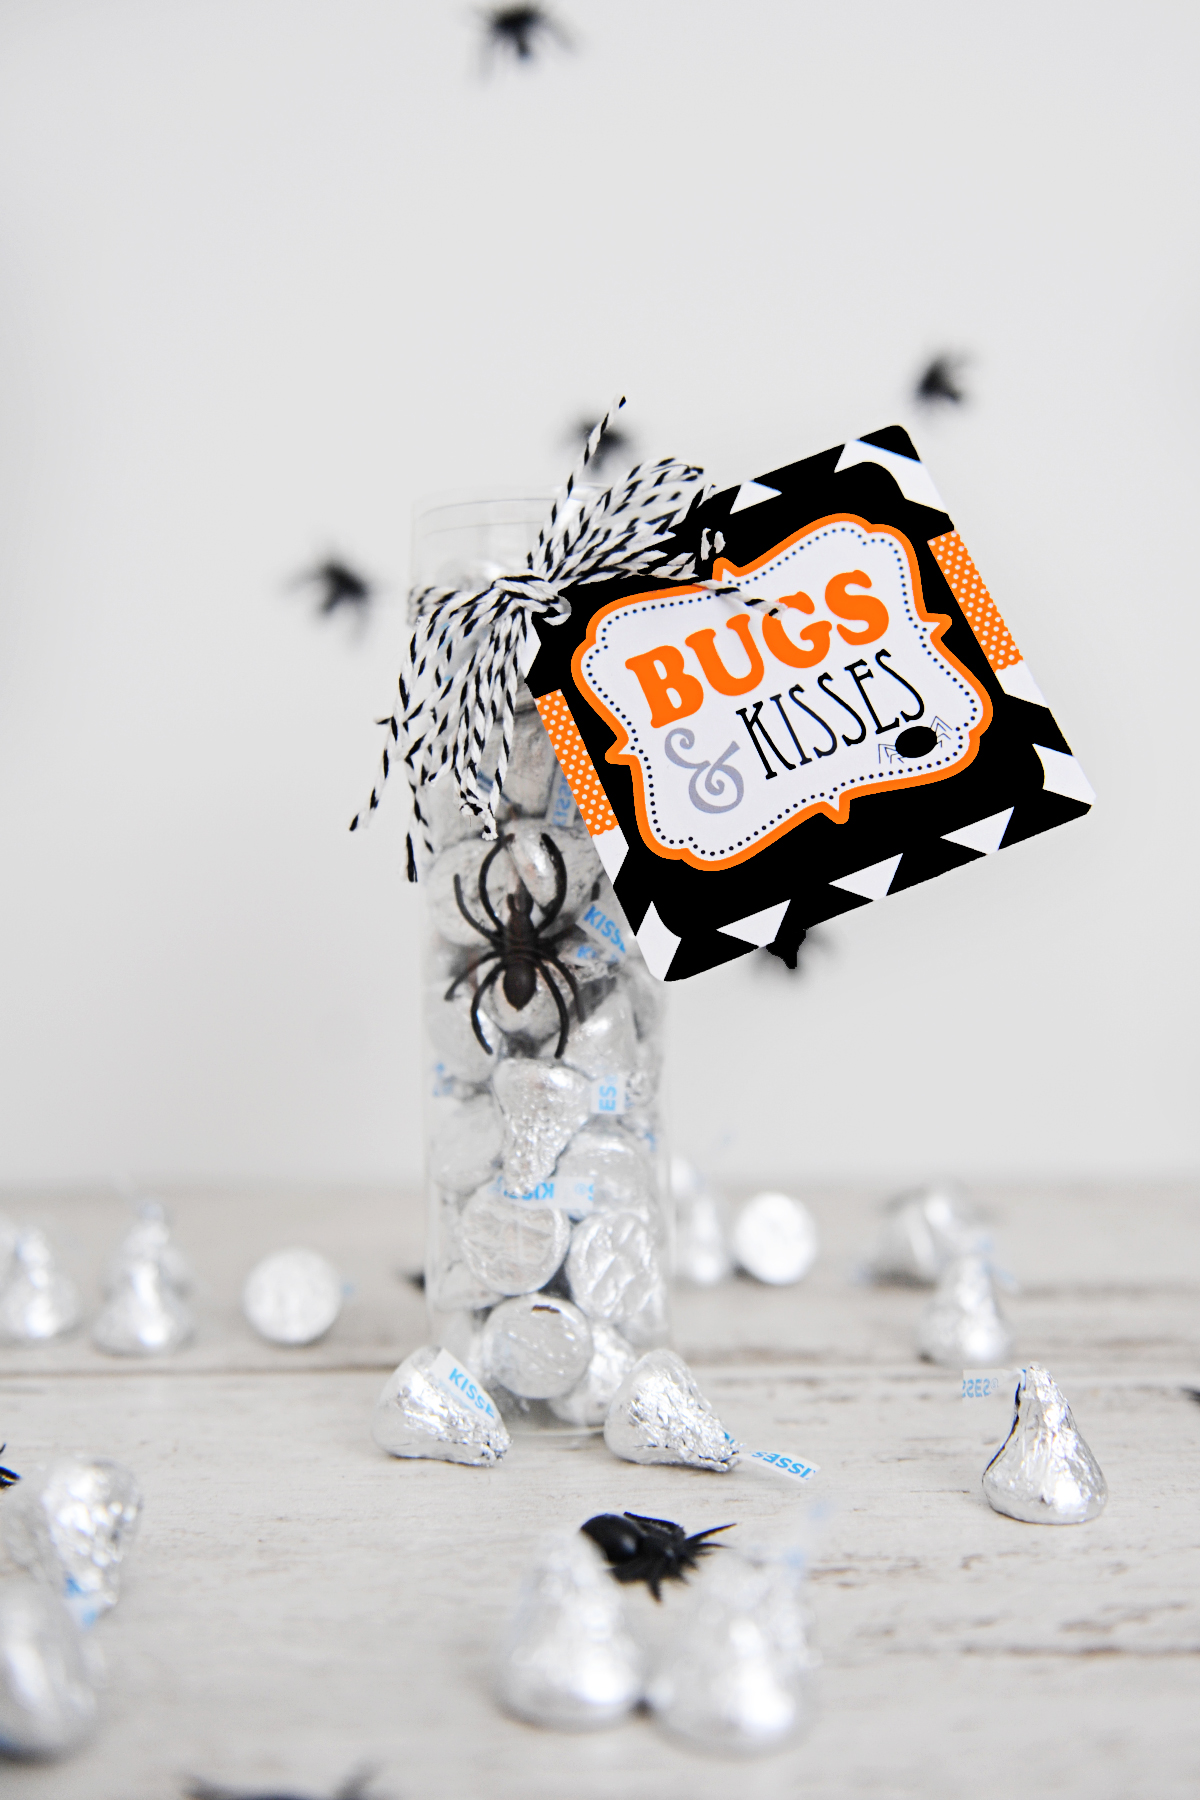 image about Bugs and Kisses Free Printable named Adorable Insects and Kisses Printable for Halloween - Purple